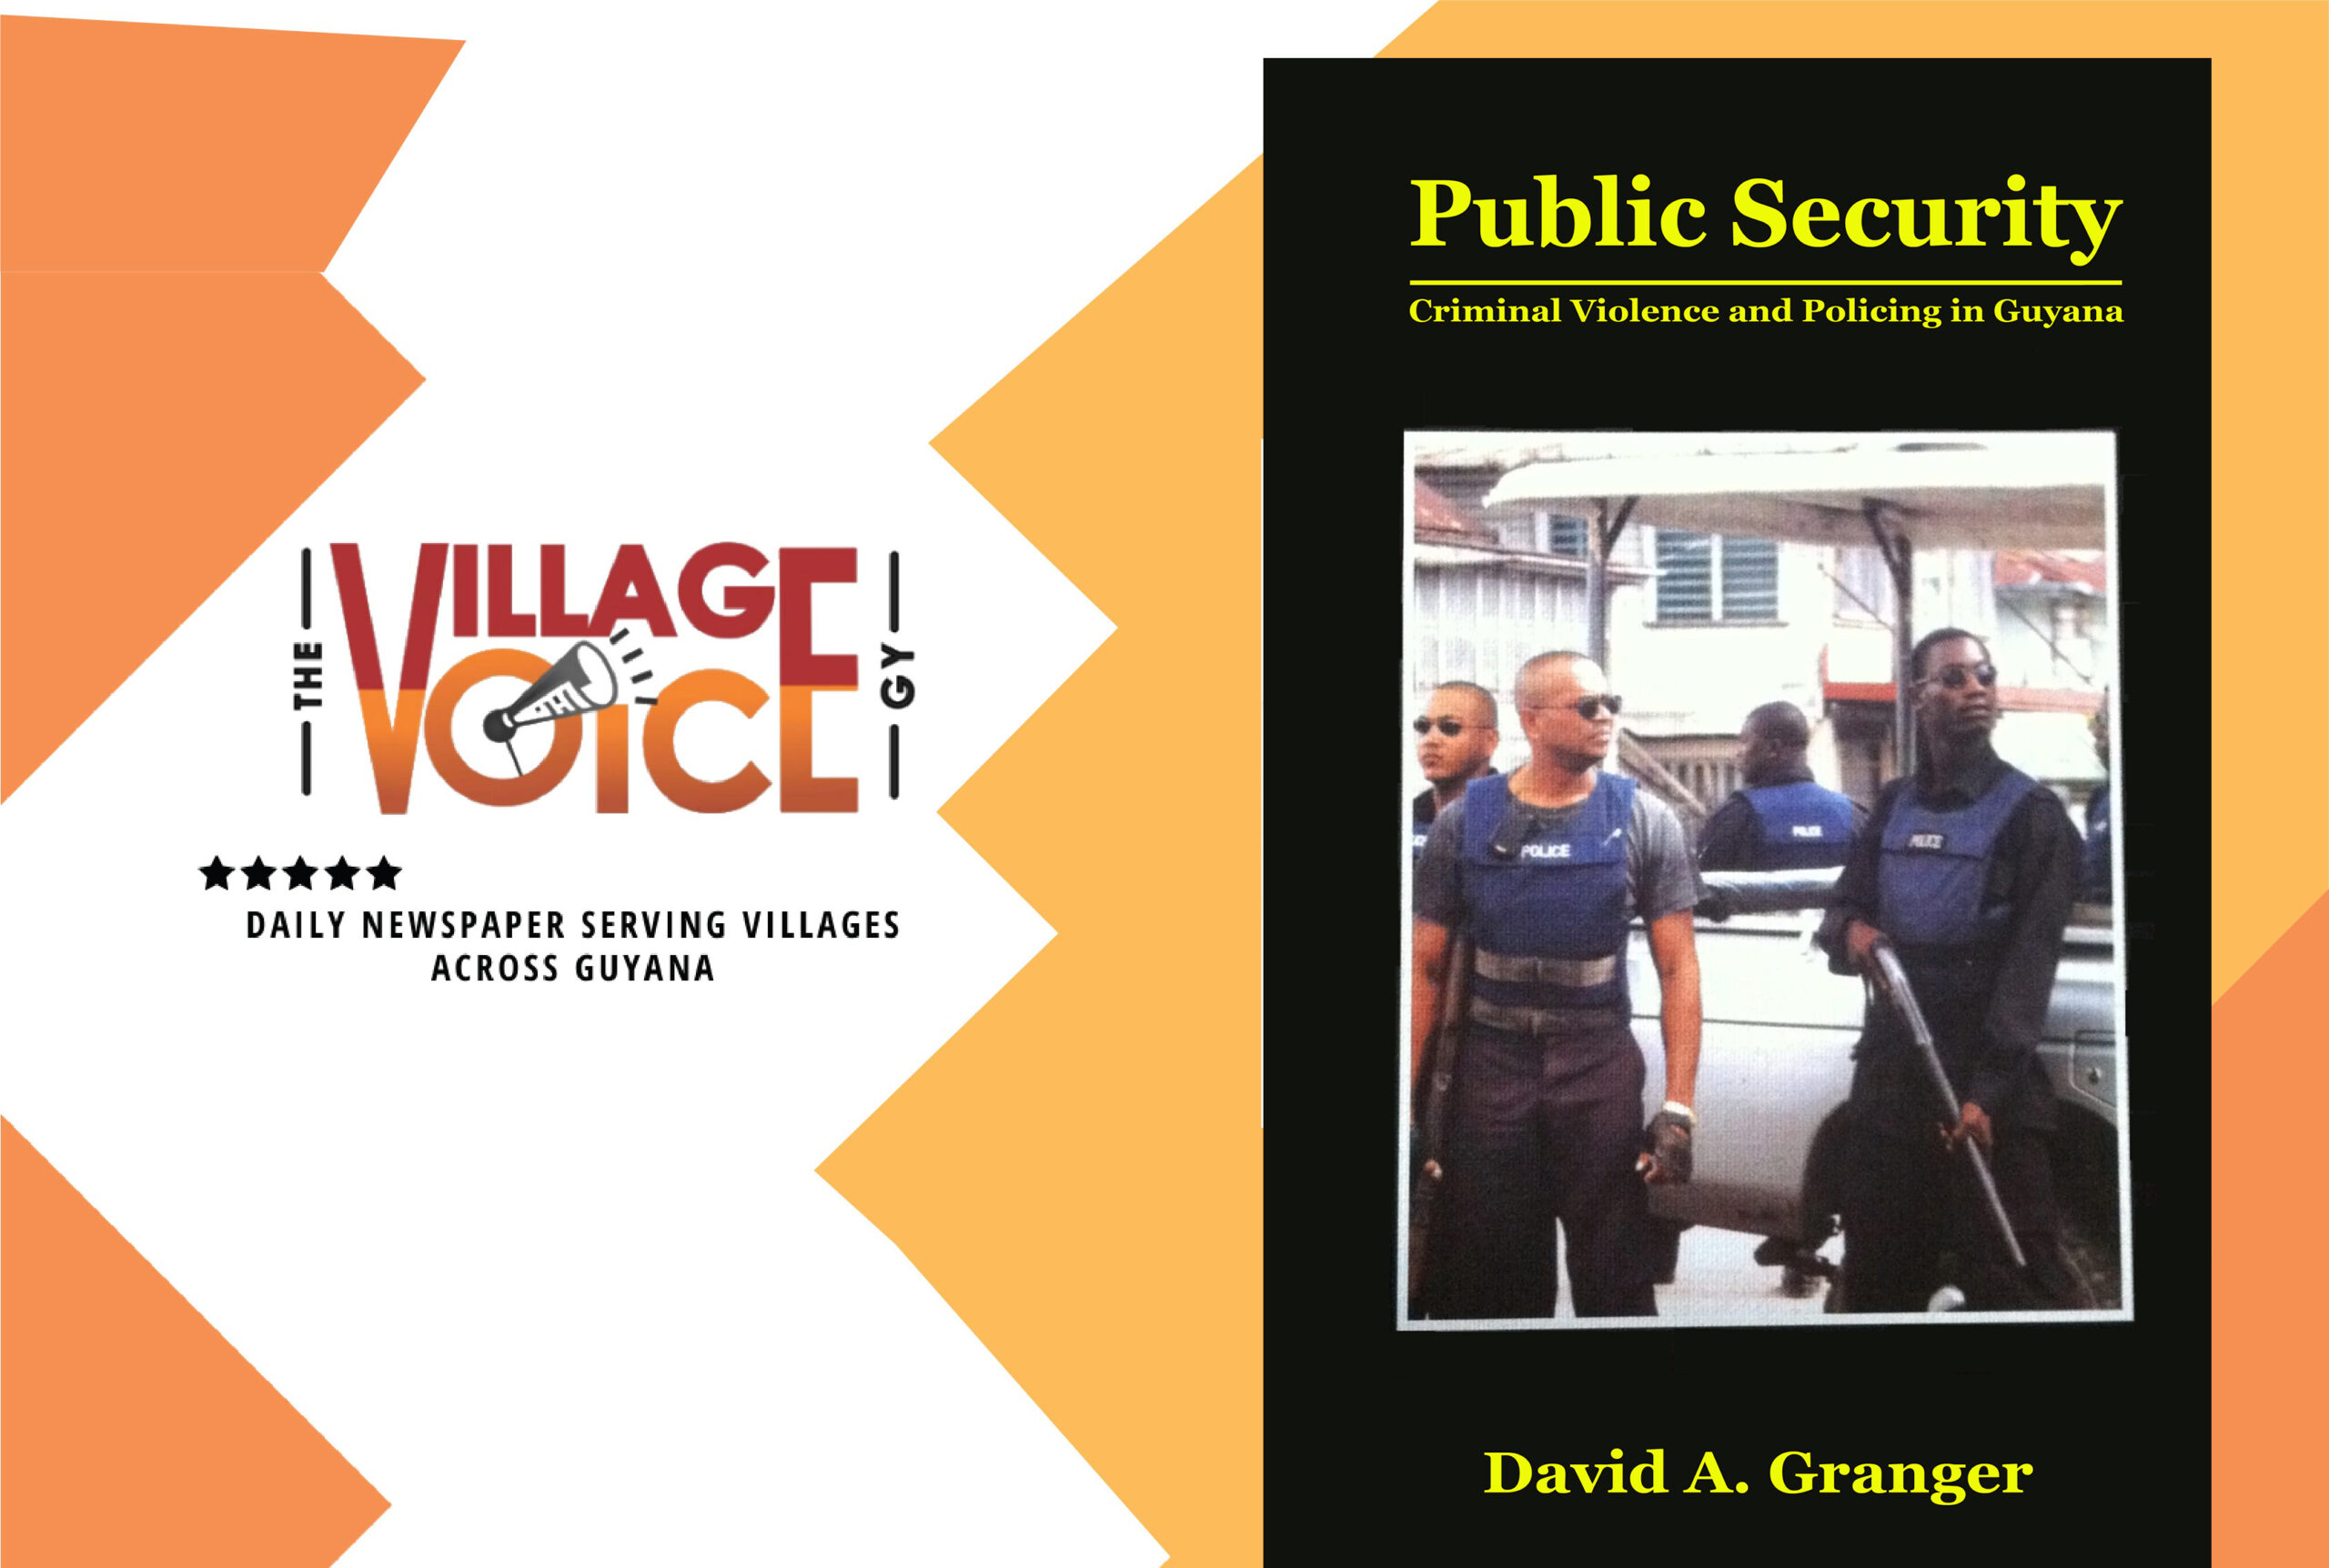 A review of David Granger's Public Security: Criminal Violence and Policing in Guyana. ISBN 978-976-8178-40-4.